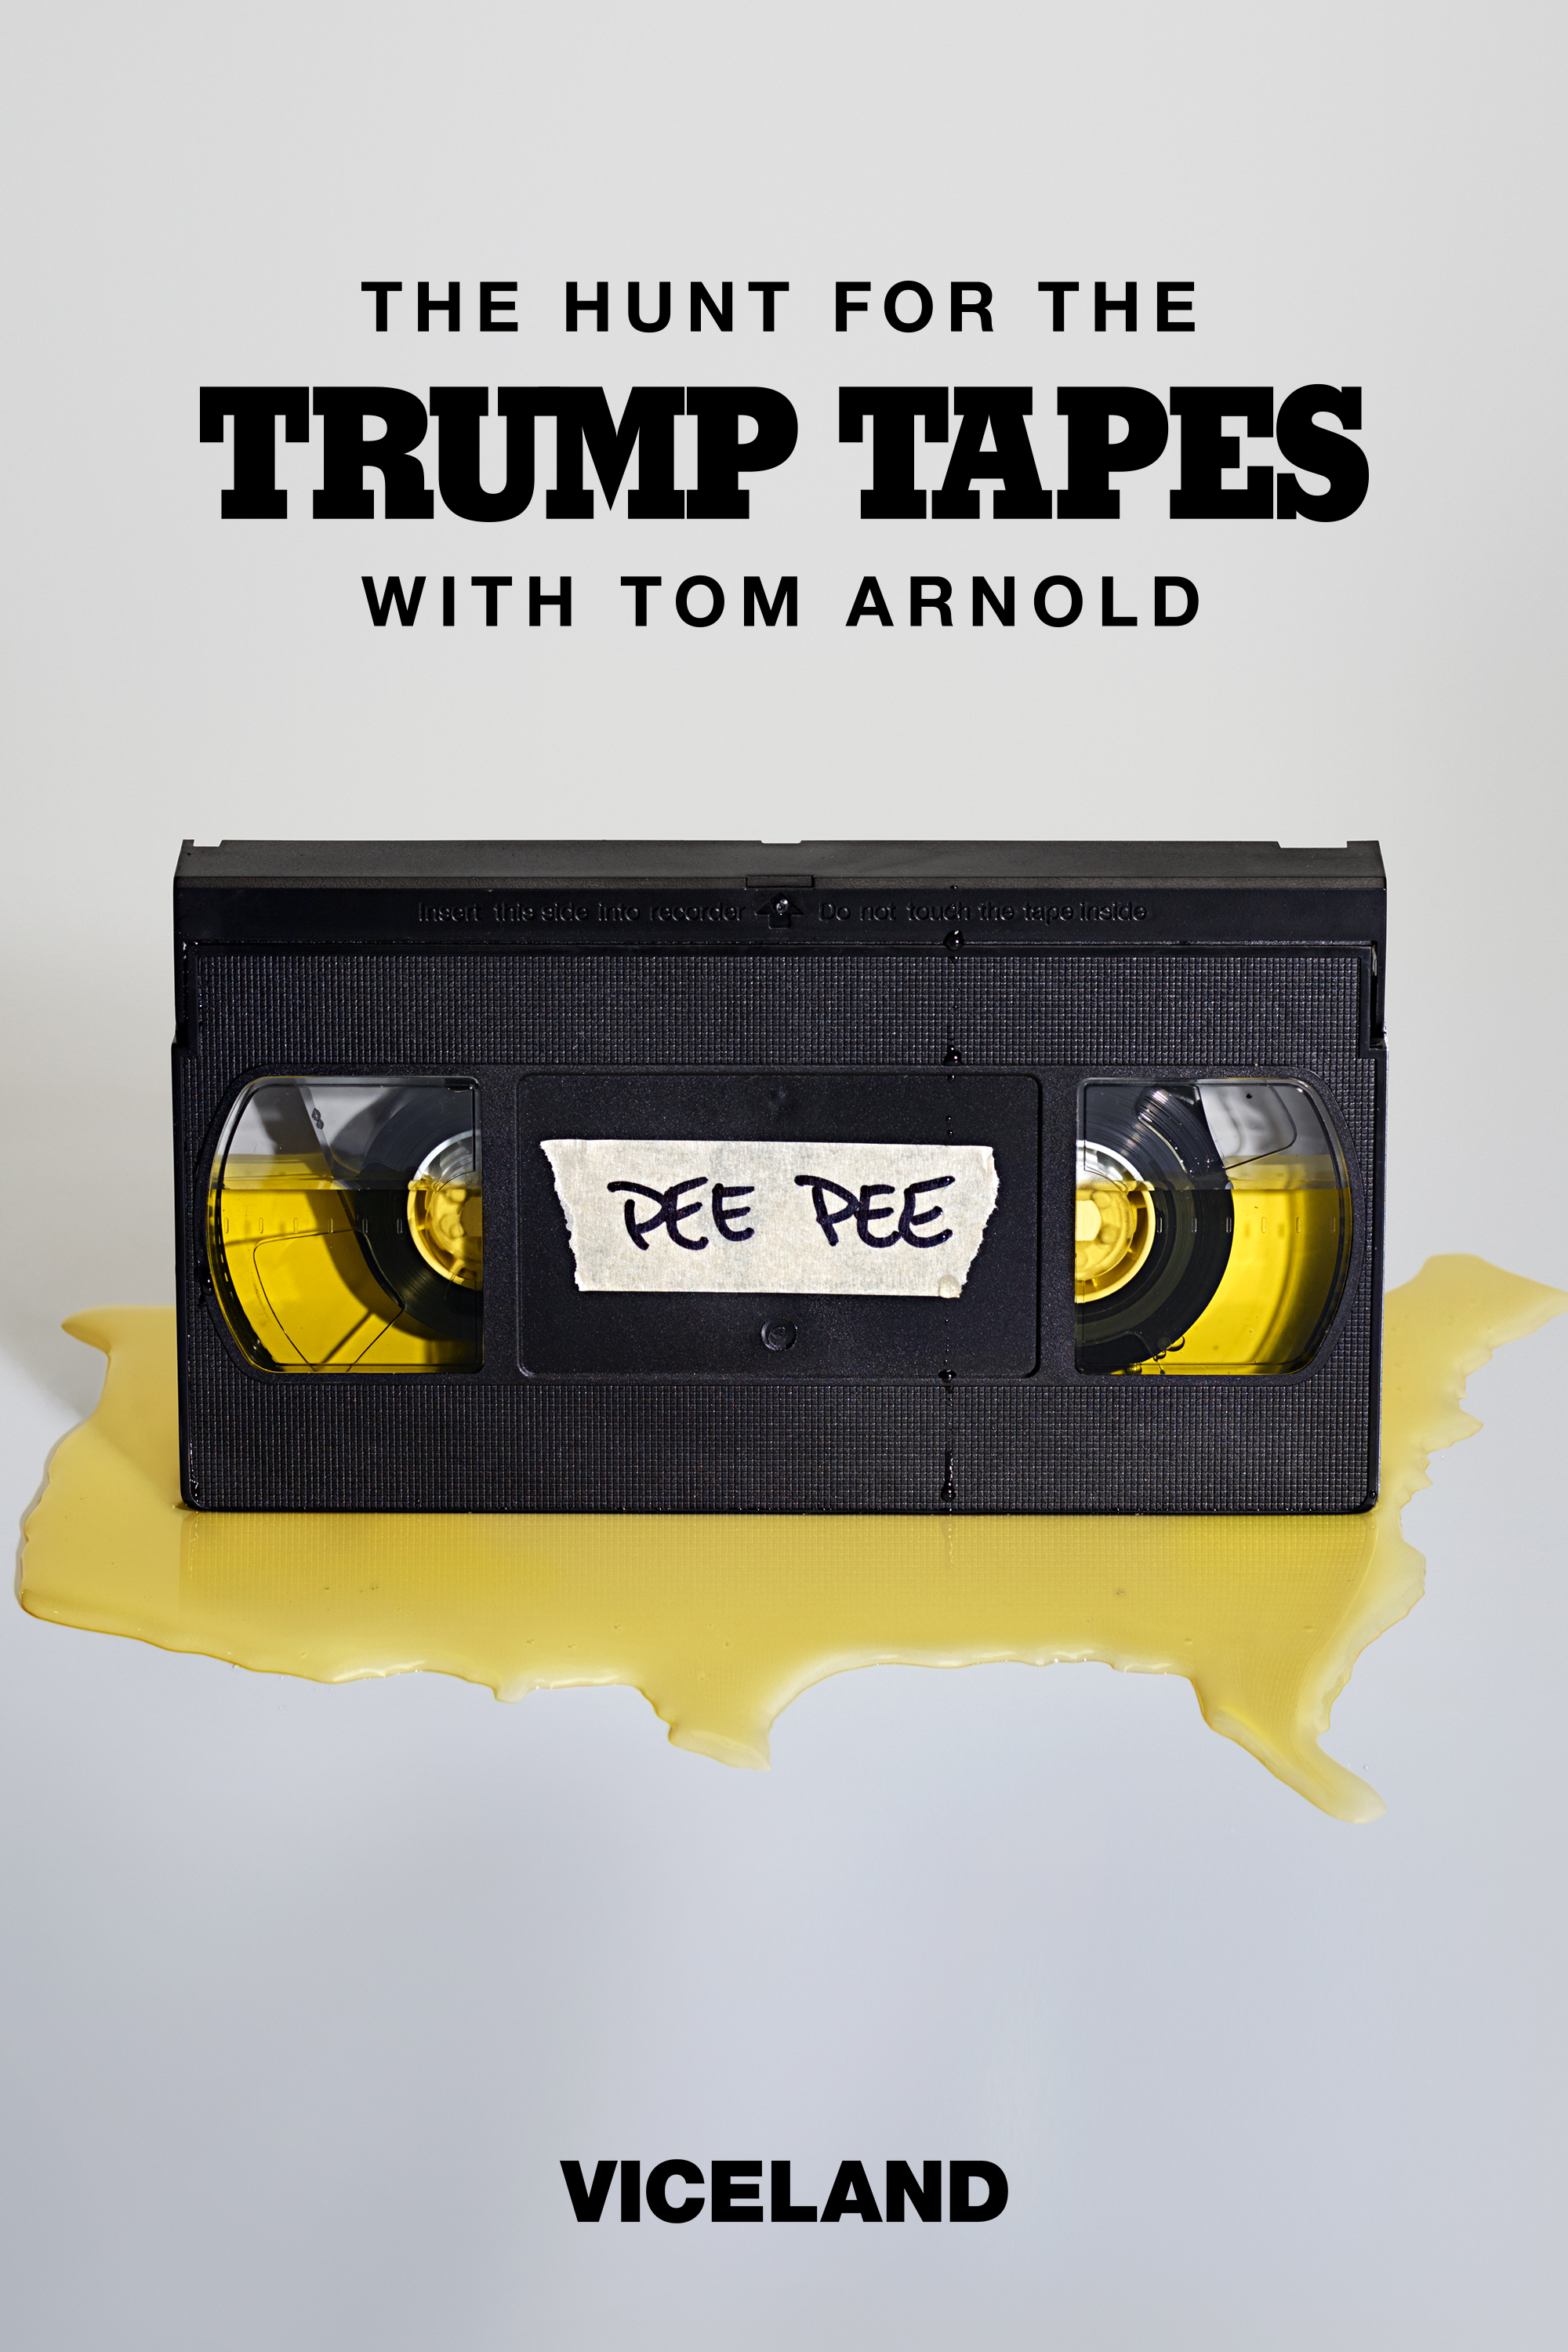 THE_HUNT_FOR_THE_TRUMP_TAPES_PEEART.jpg